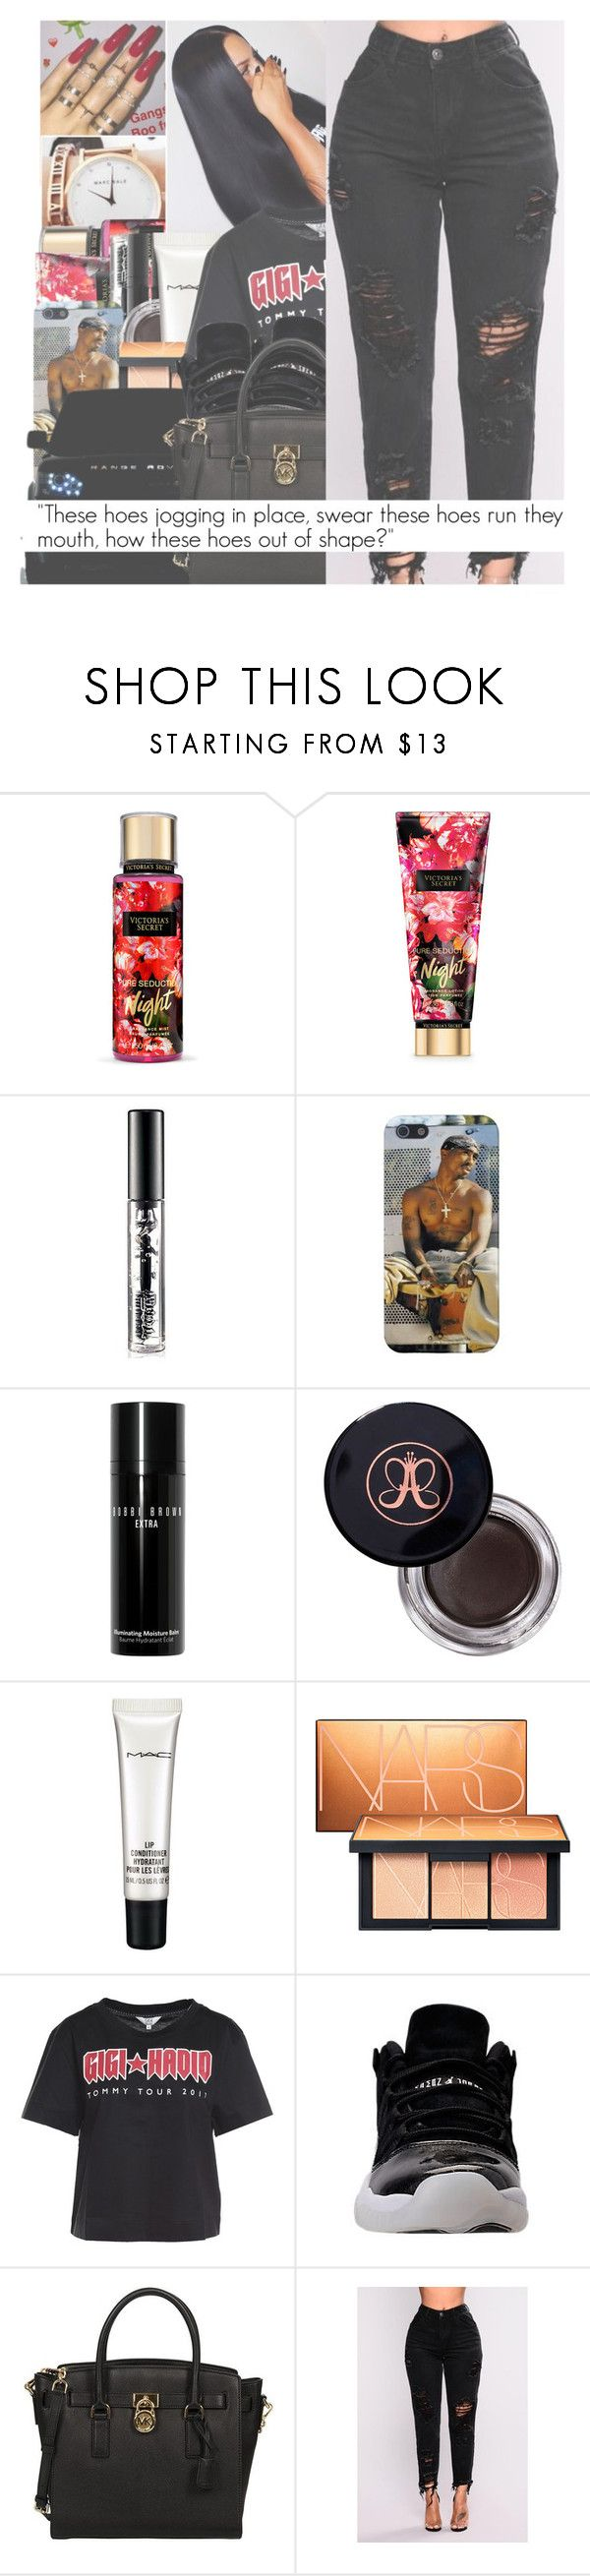 """""""NO LIMIT ~ G EAZY FT CARDI B"""" by w-on-der-lan-d ❤ liked on Polyvore featuring Victoria's Secret, MAC Cosmetics, Bobbi Brown Cosmetics, Anastasia Beverly Hills, NARS Cosmetics, Tommy Hilfiger, Michael Kors, casual, black and red"""